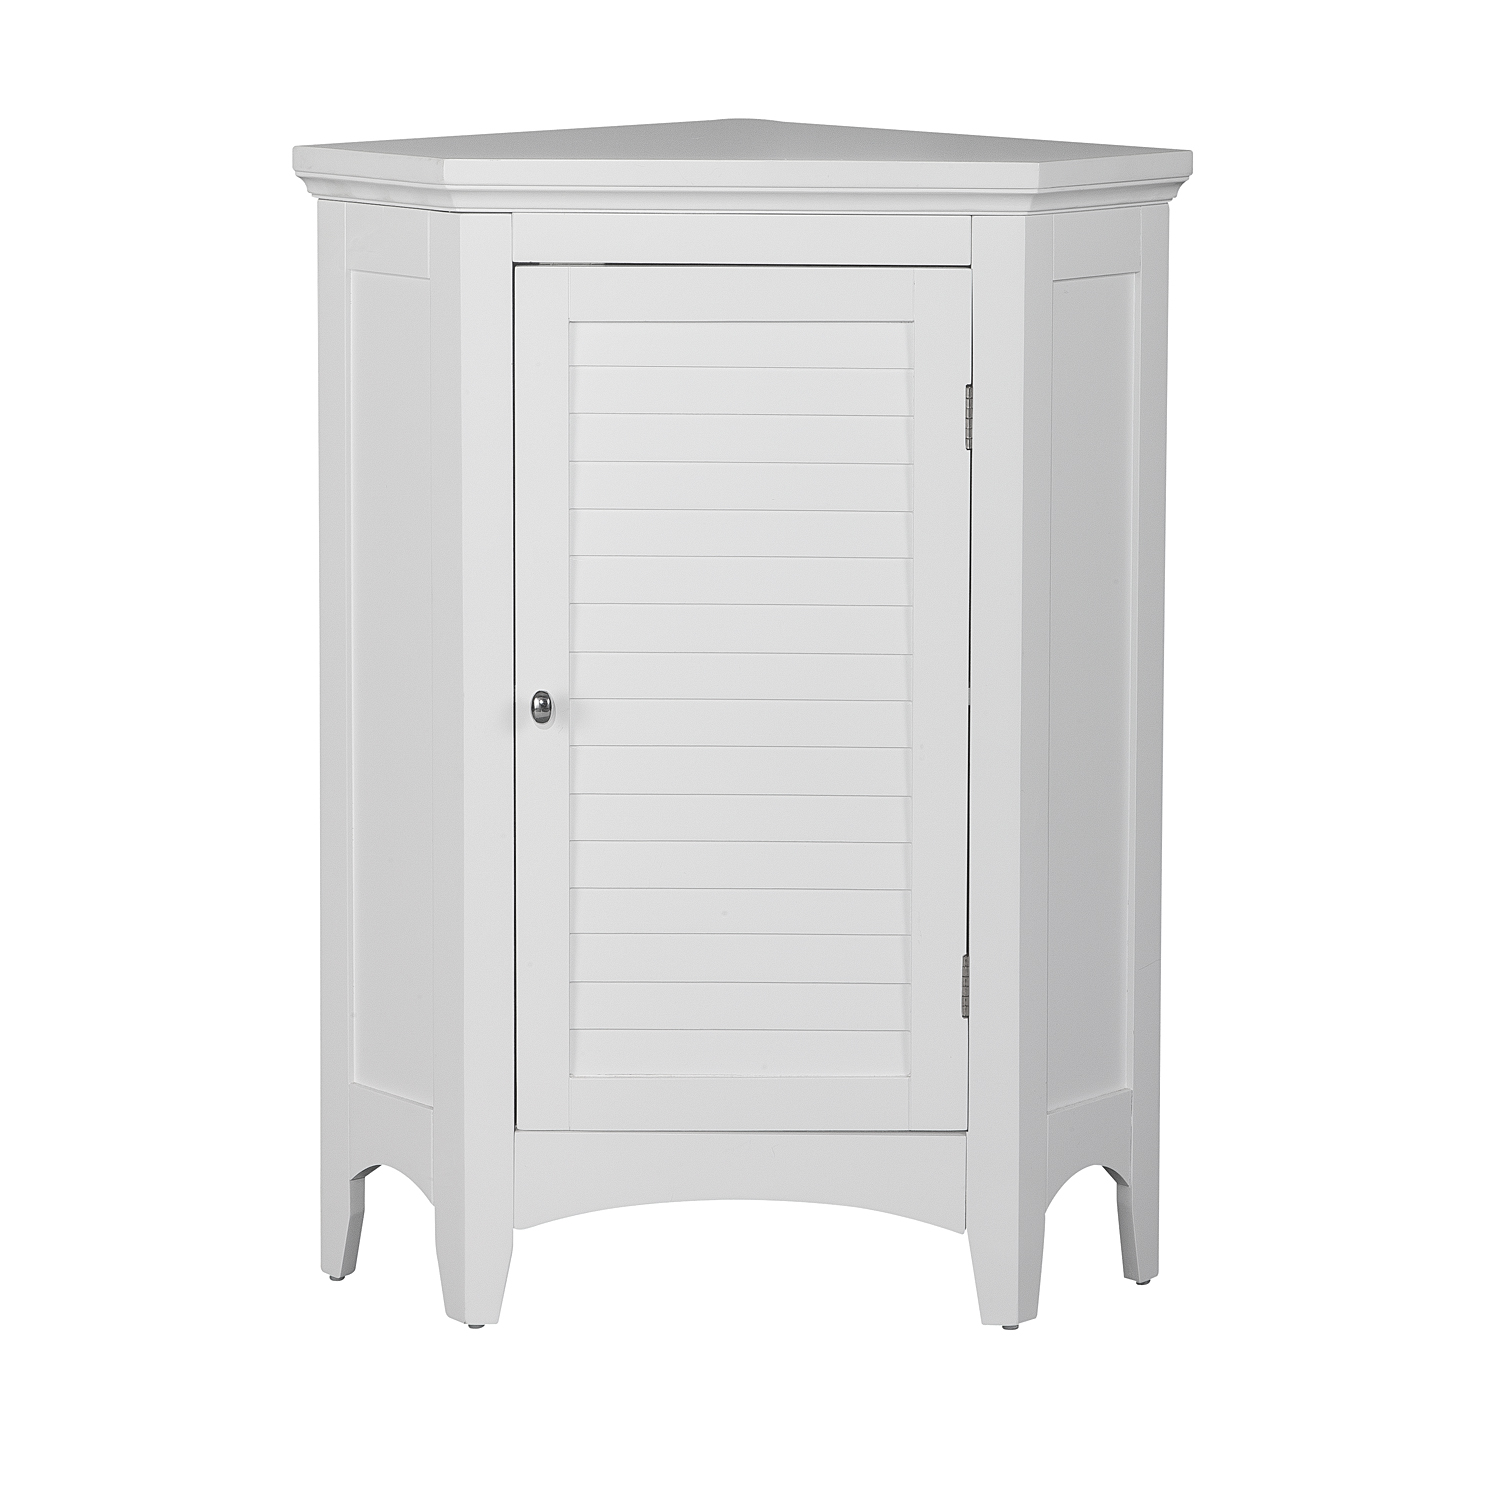 Elegant Home Fashions Sicily Corner Floor Cabinet with 1 Shutter Door, White